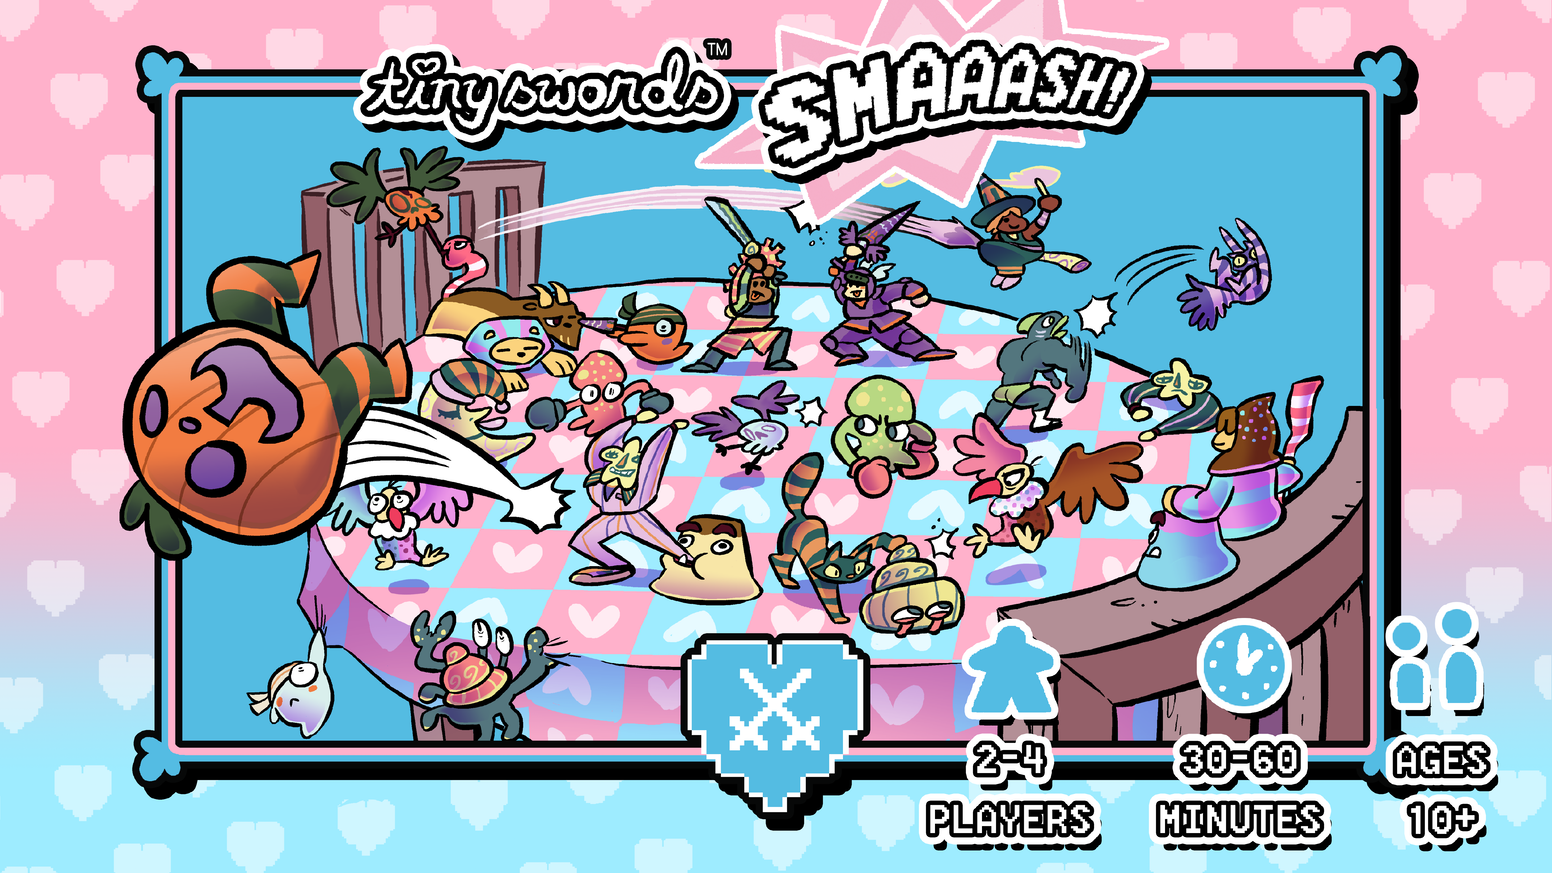 A madcap Smash Bros style boardgame for 2-4 friends! Lead your monsters into battle and kick your friends off the table!